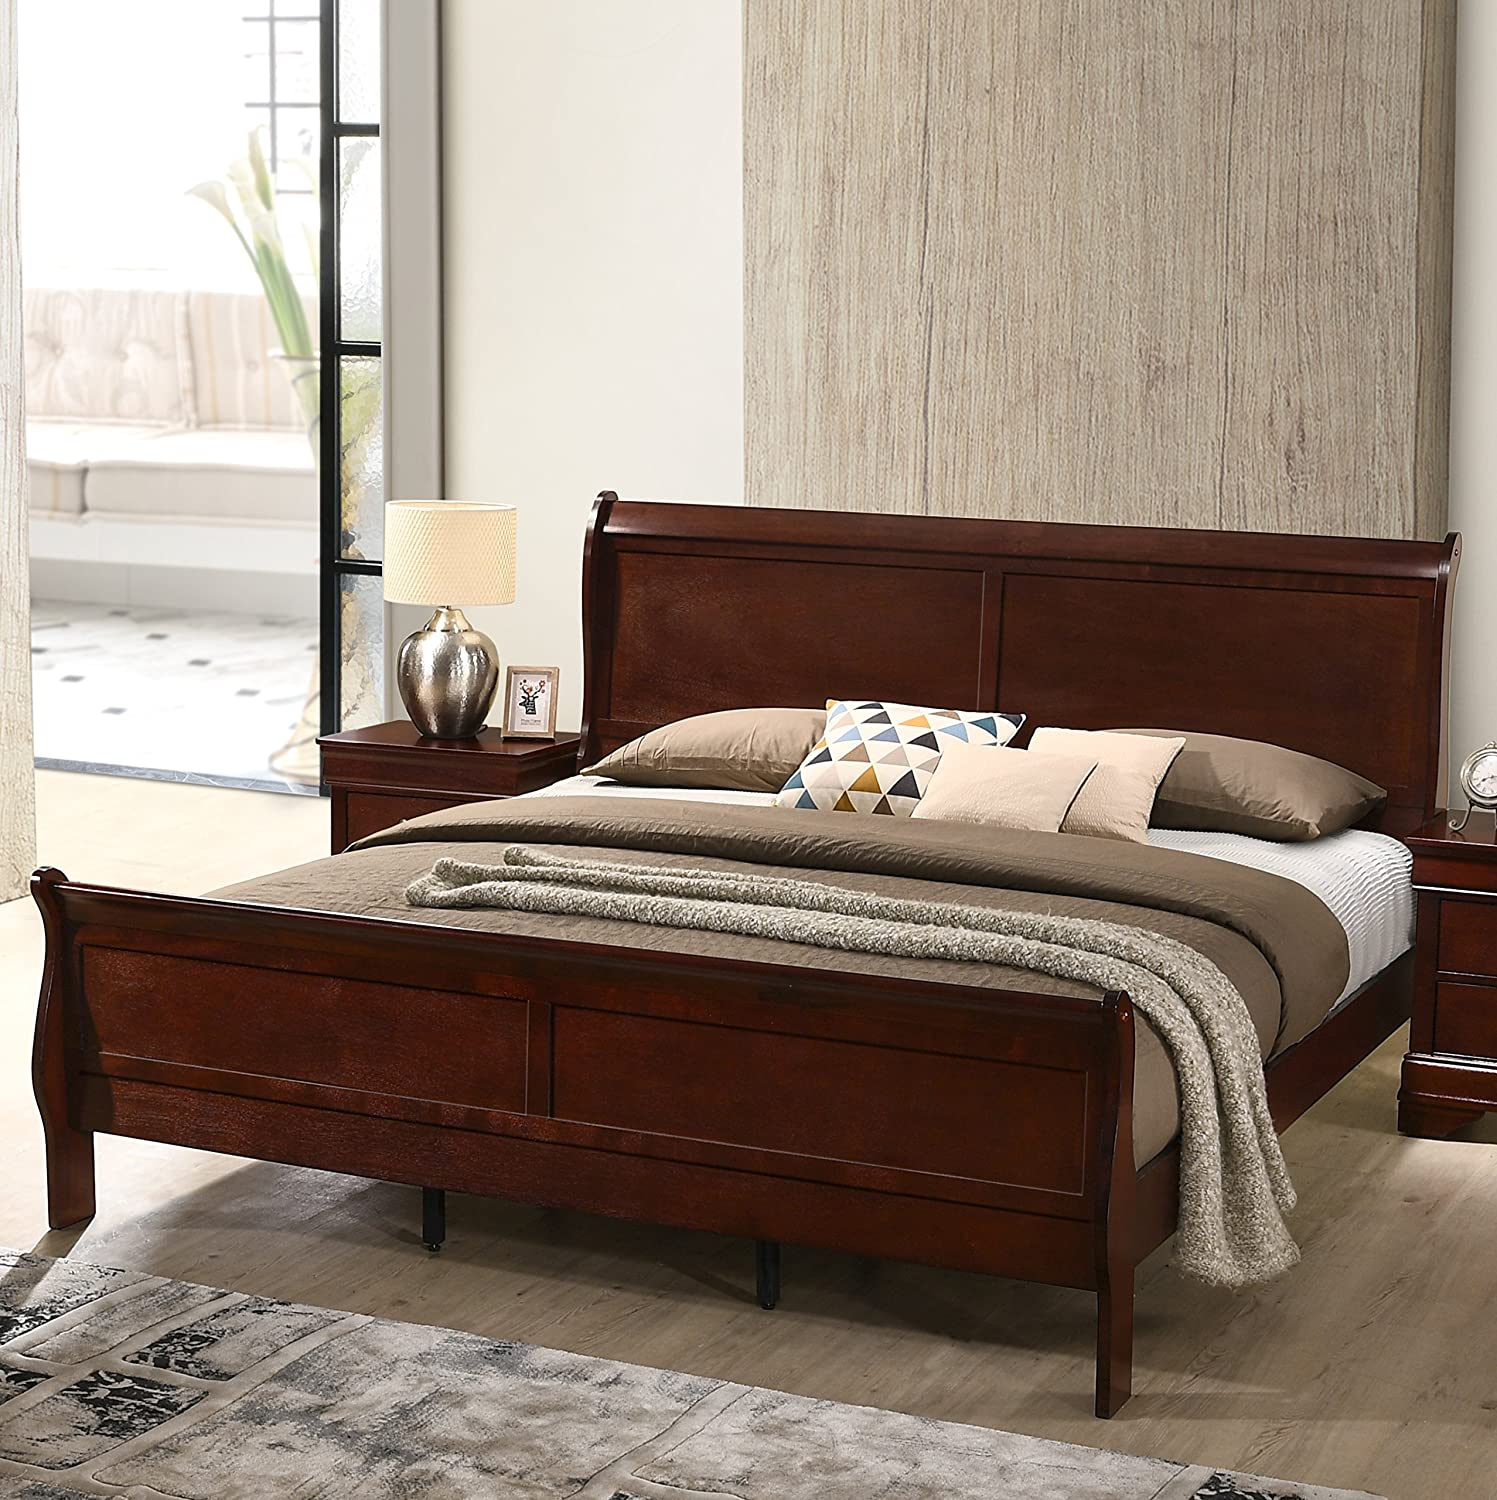 Amazon com roundhill furniture isola louis philippe style wood sleigh bed queen cherry finish kitchen dining